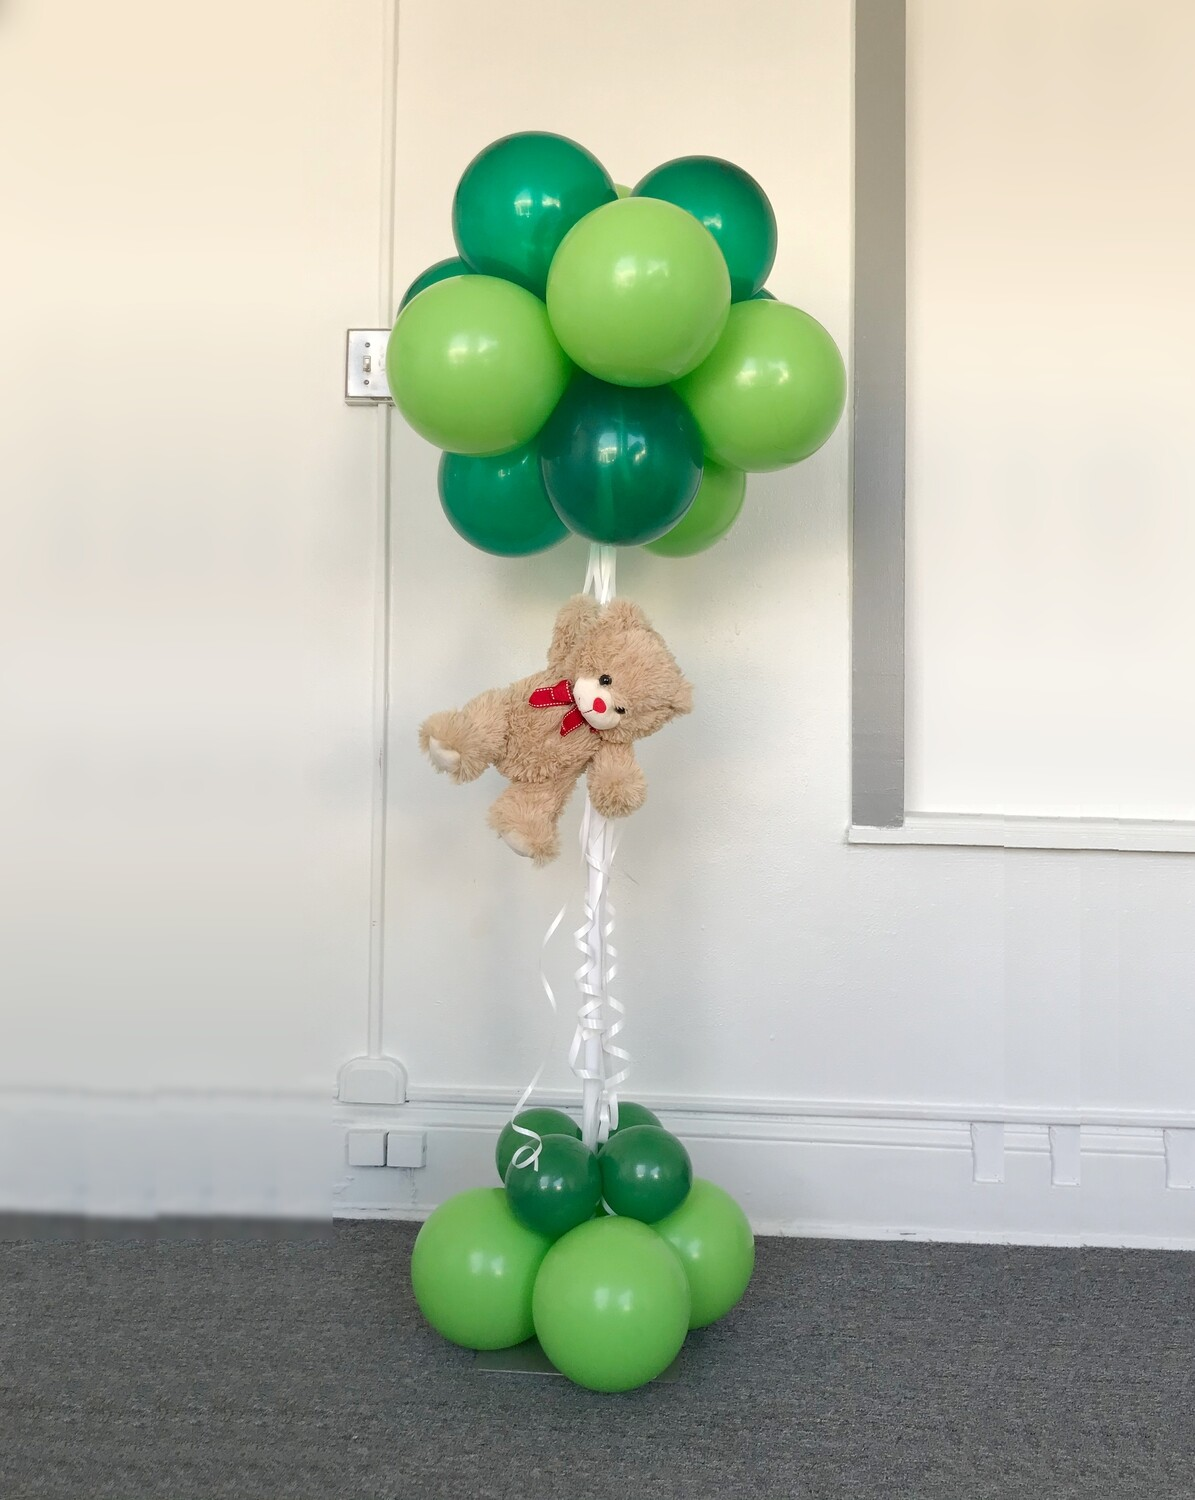 Floating teddy bear on Traditional topiary centerpiece balloon decoration